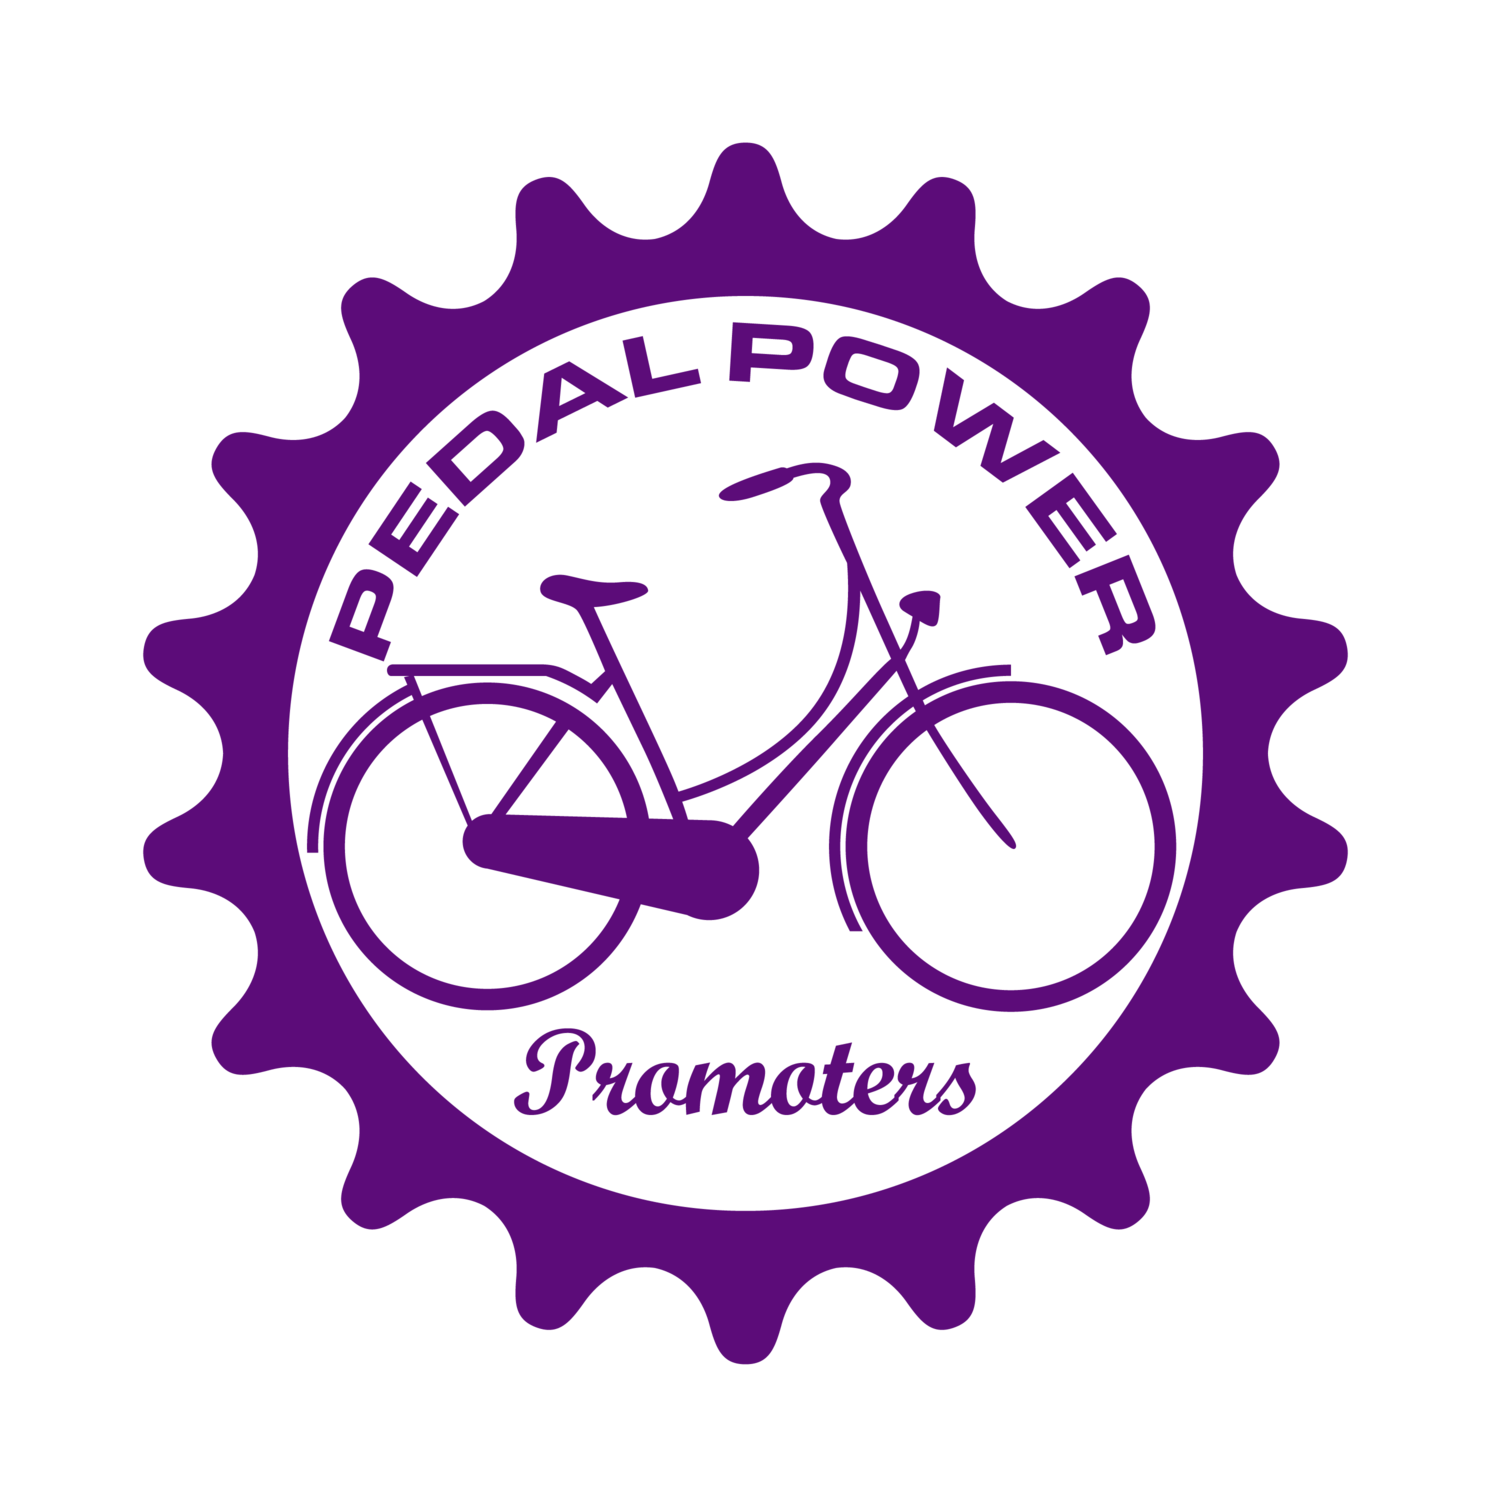 Pedal Power Promoters